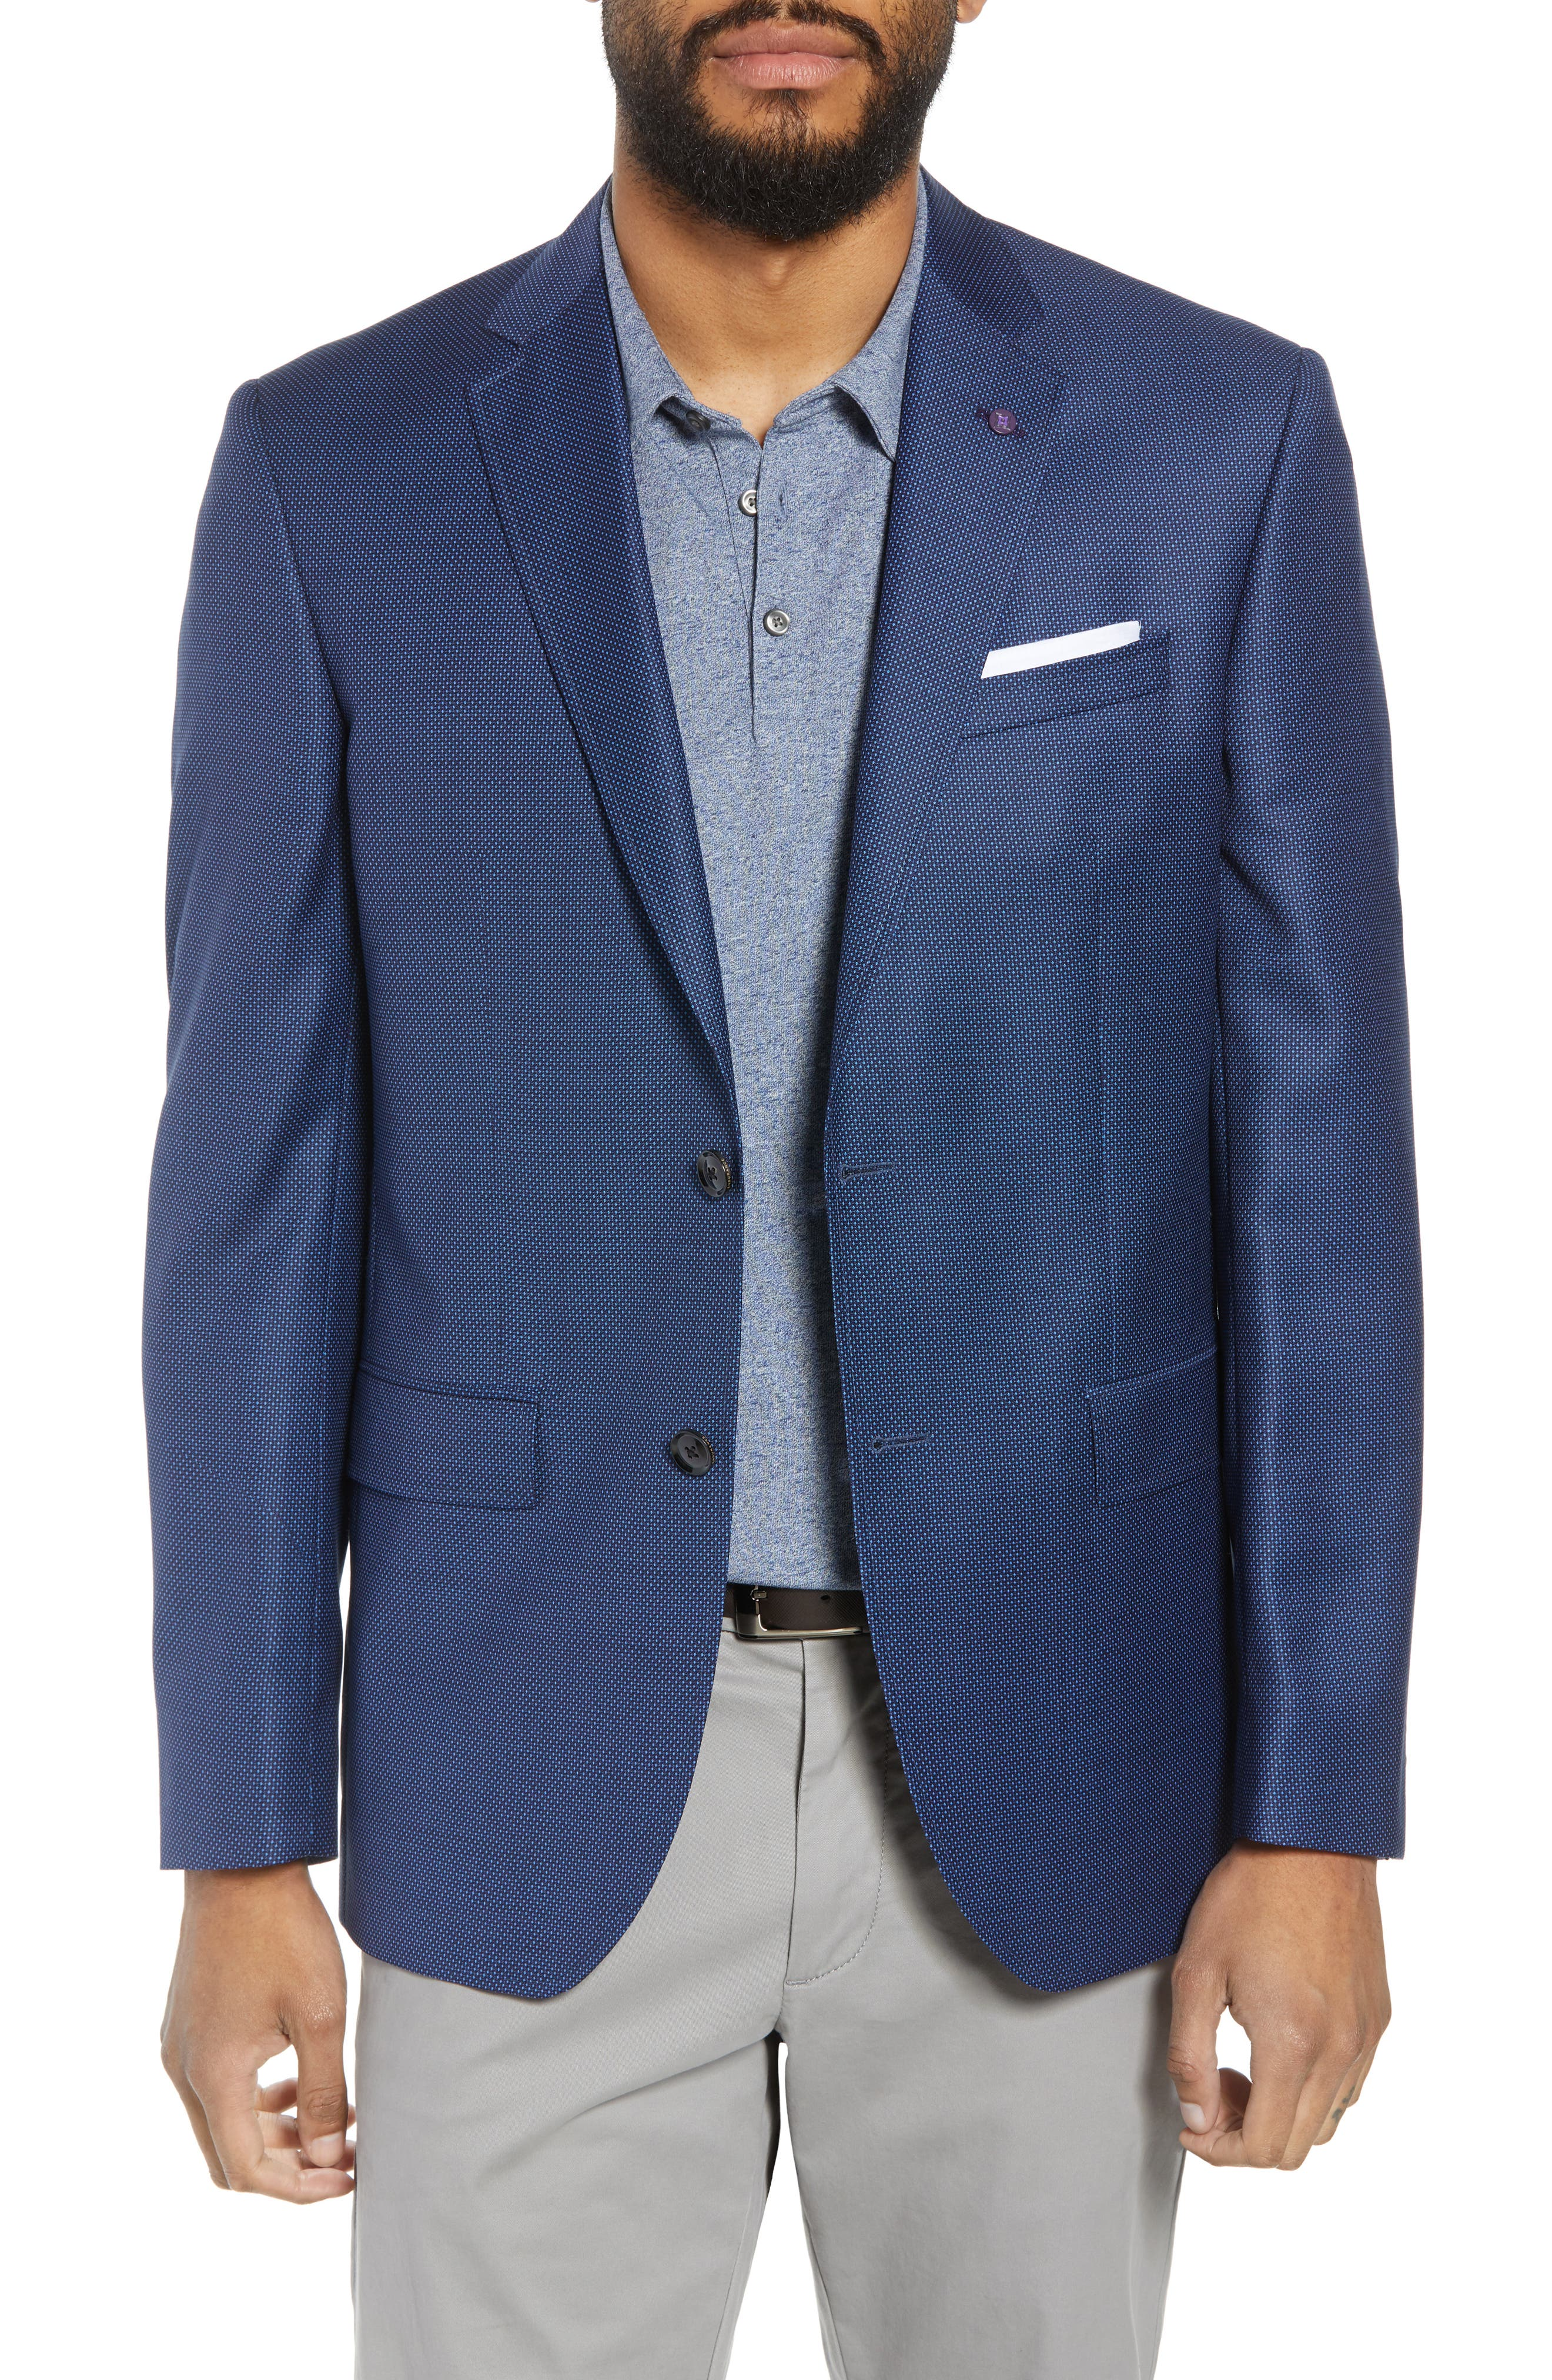 Jay Trim Fit Microdot Wool Sport Coat,                         Main,                         color, Blue